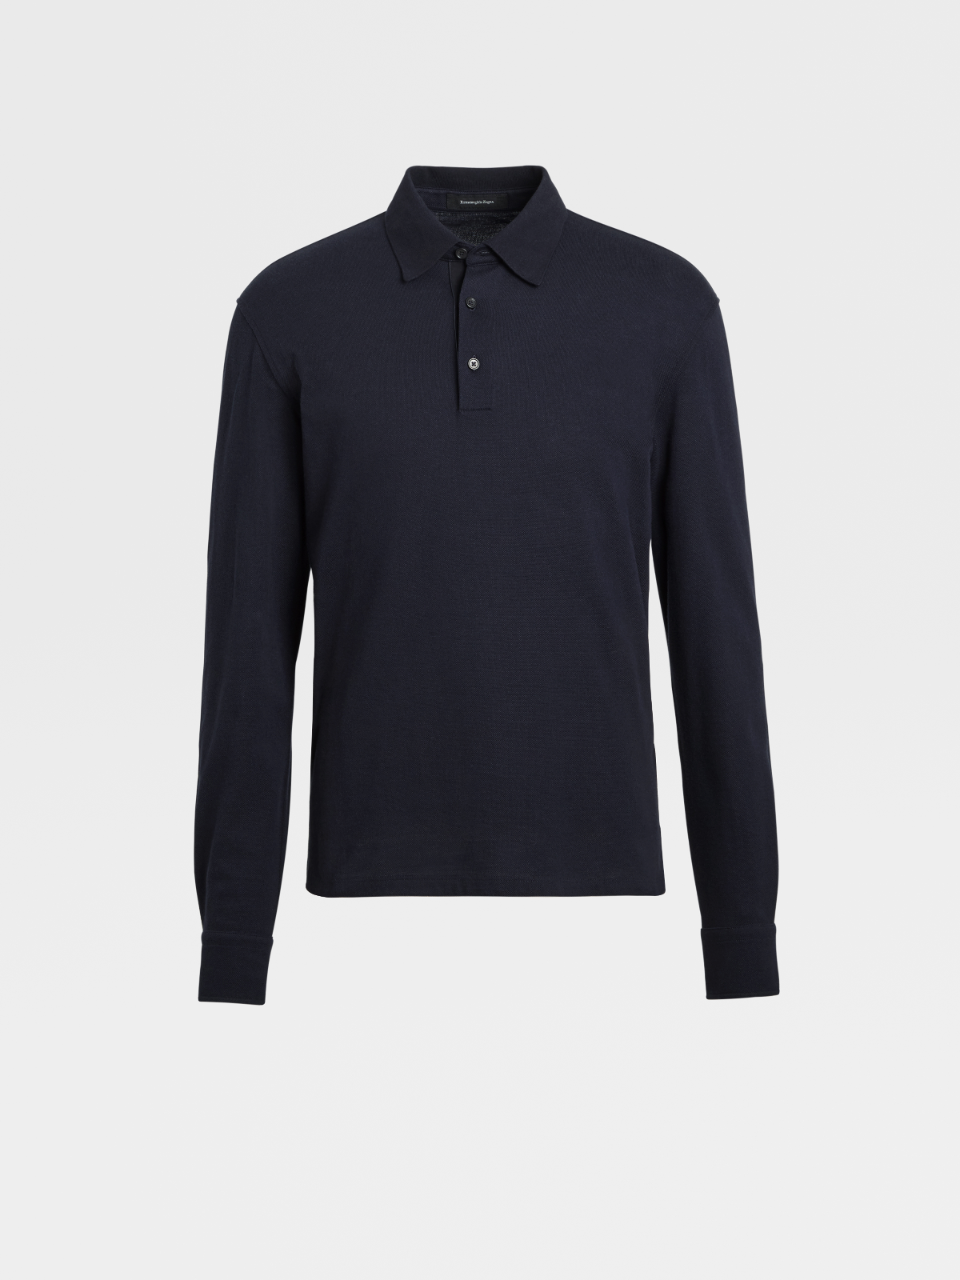 Cotton Piquet Polo